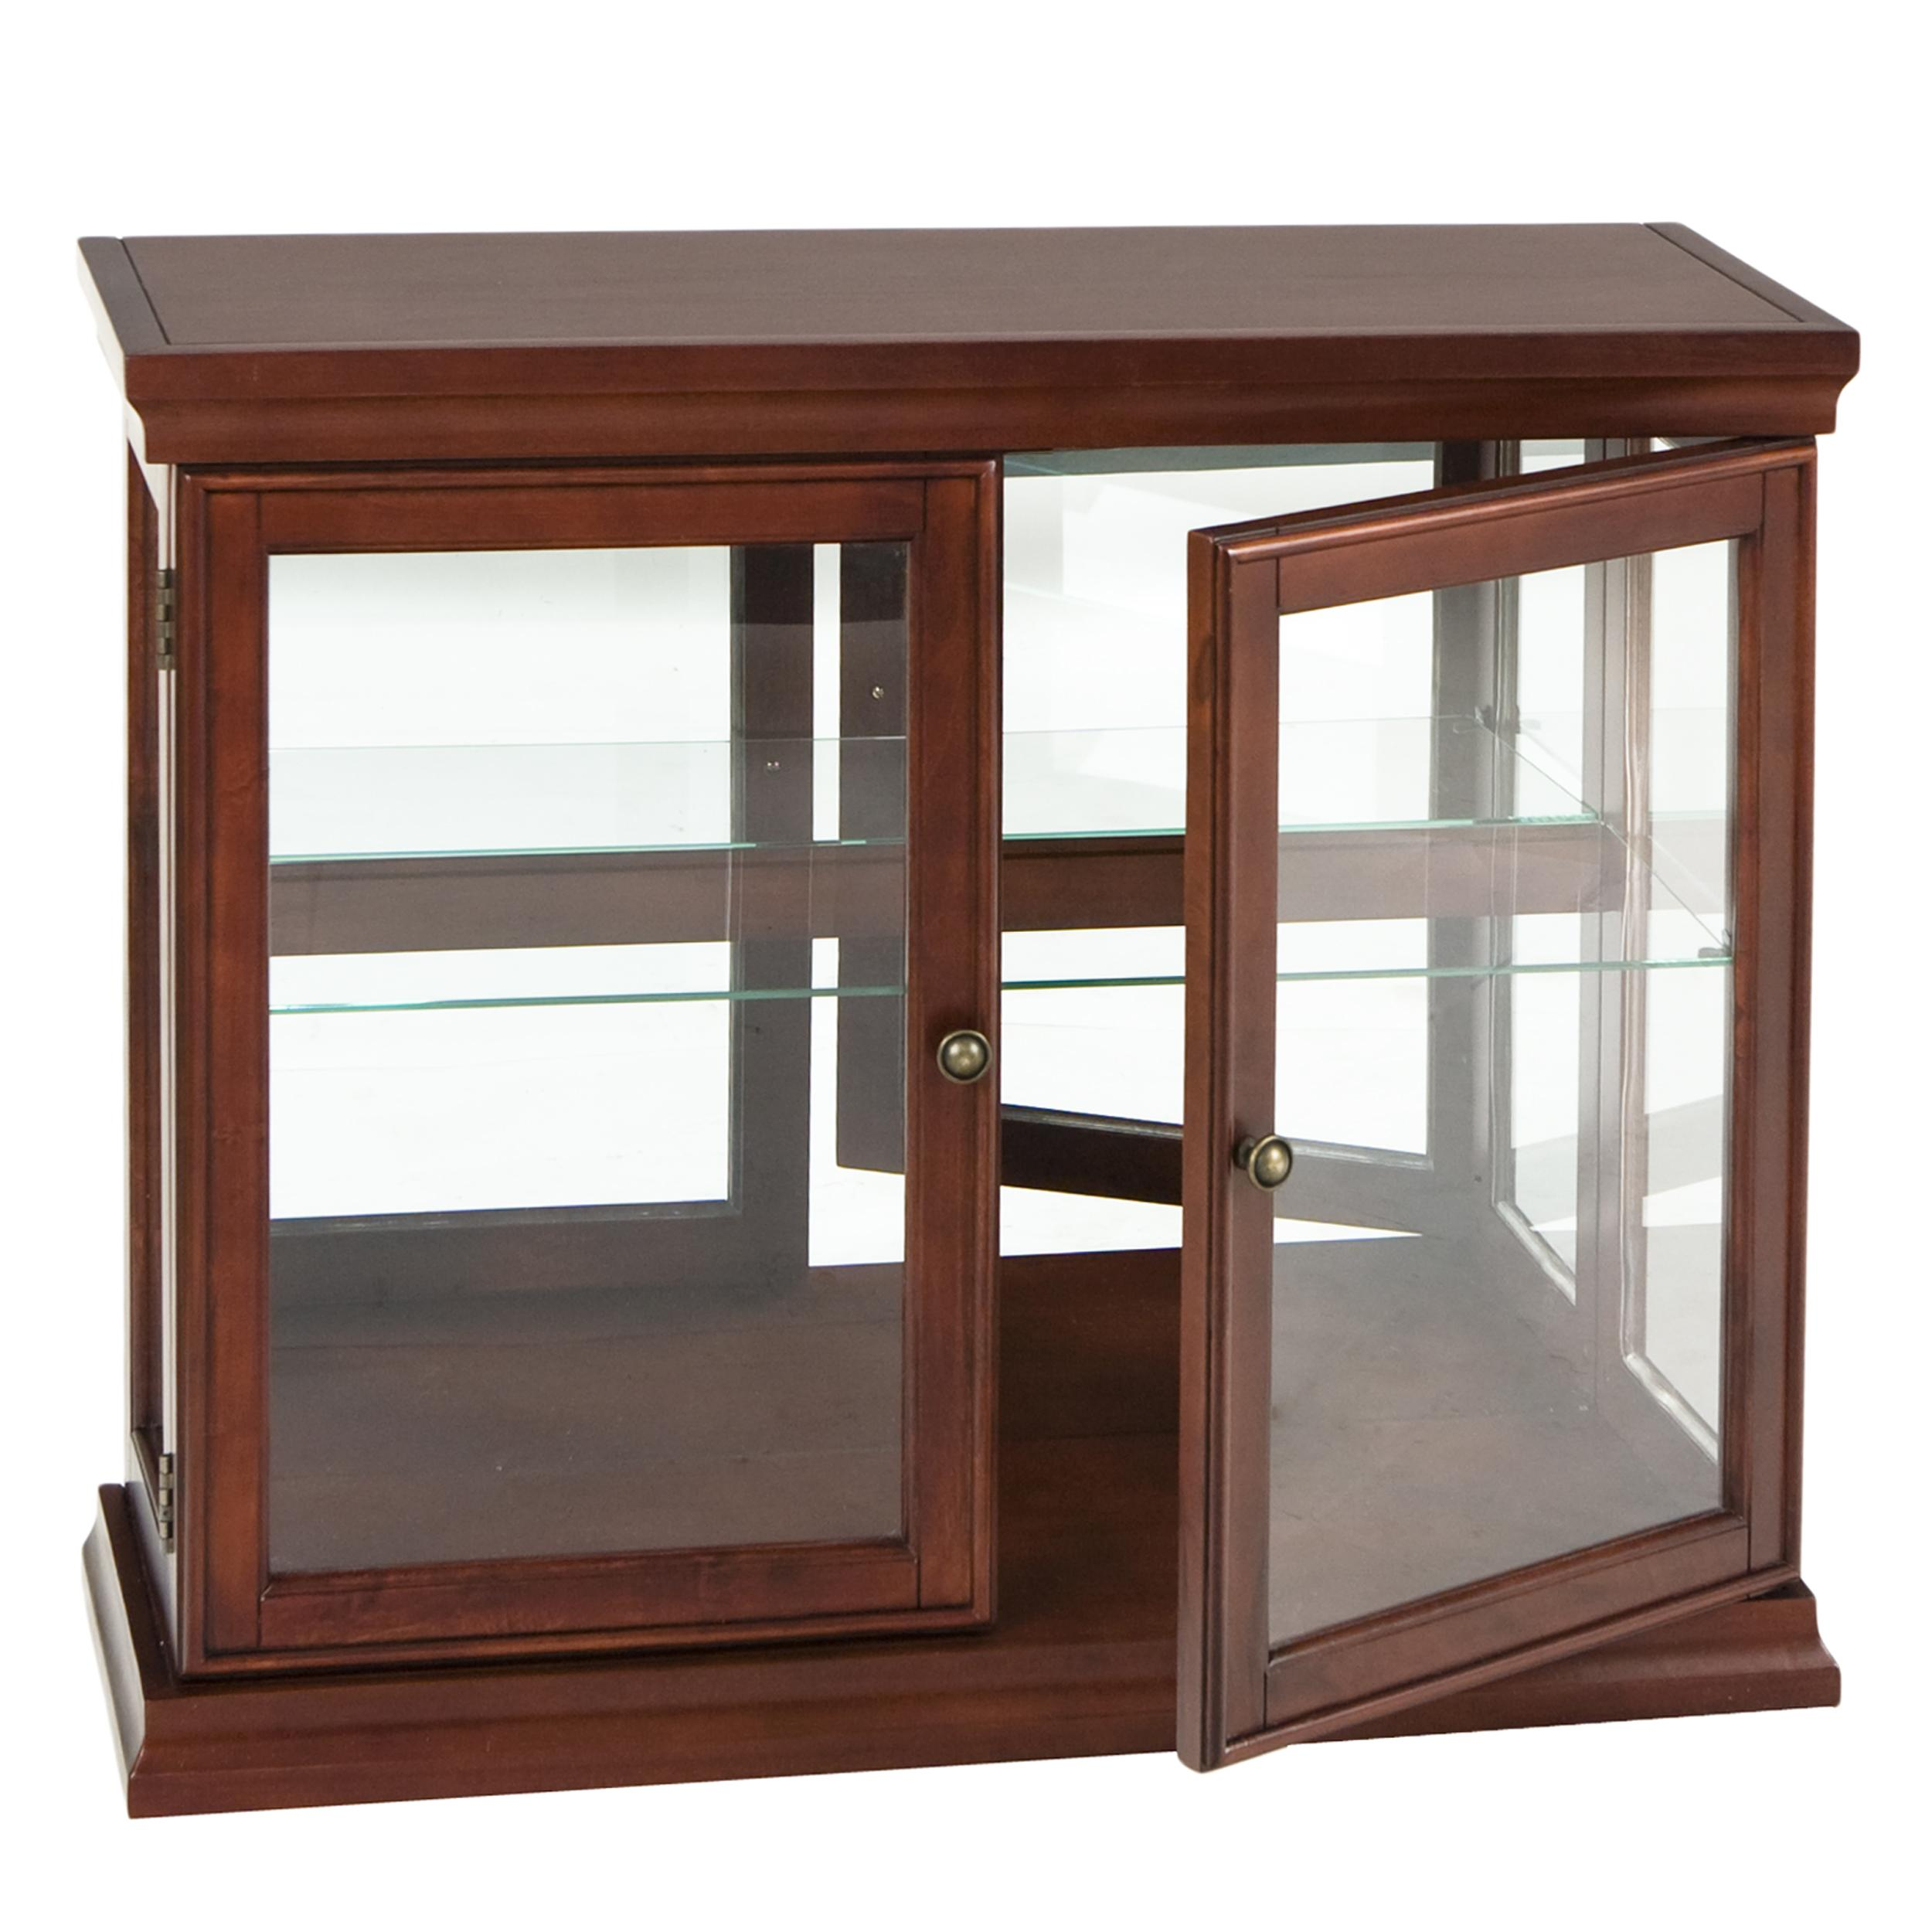 of mid a inspiration cheap wood is century in solid display modern featured cabinets this cabinet china